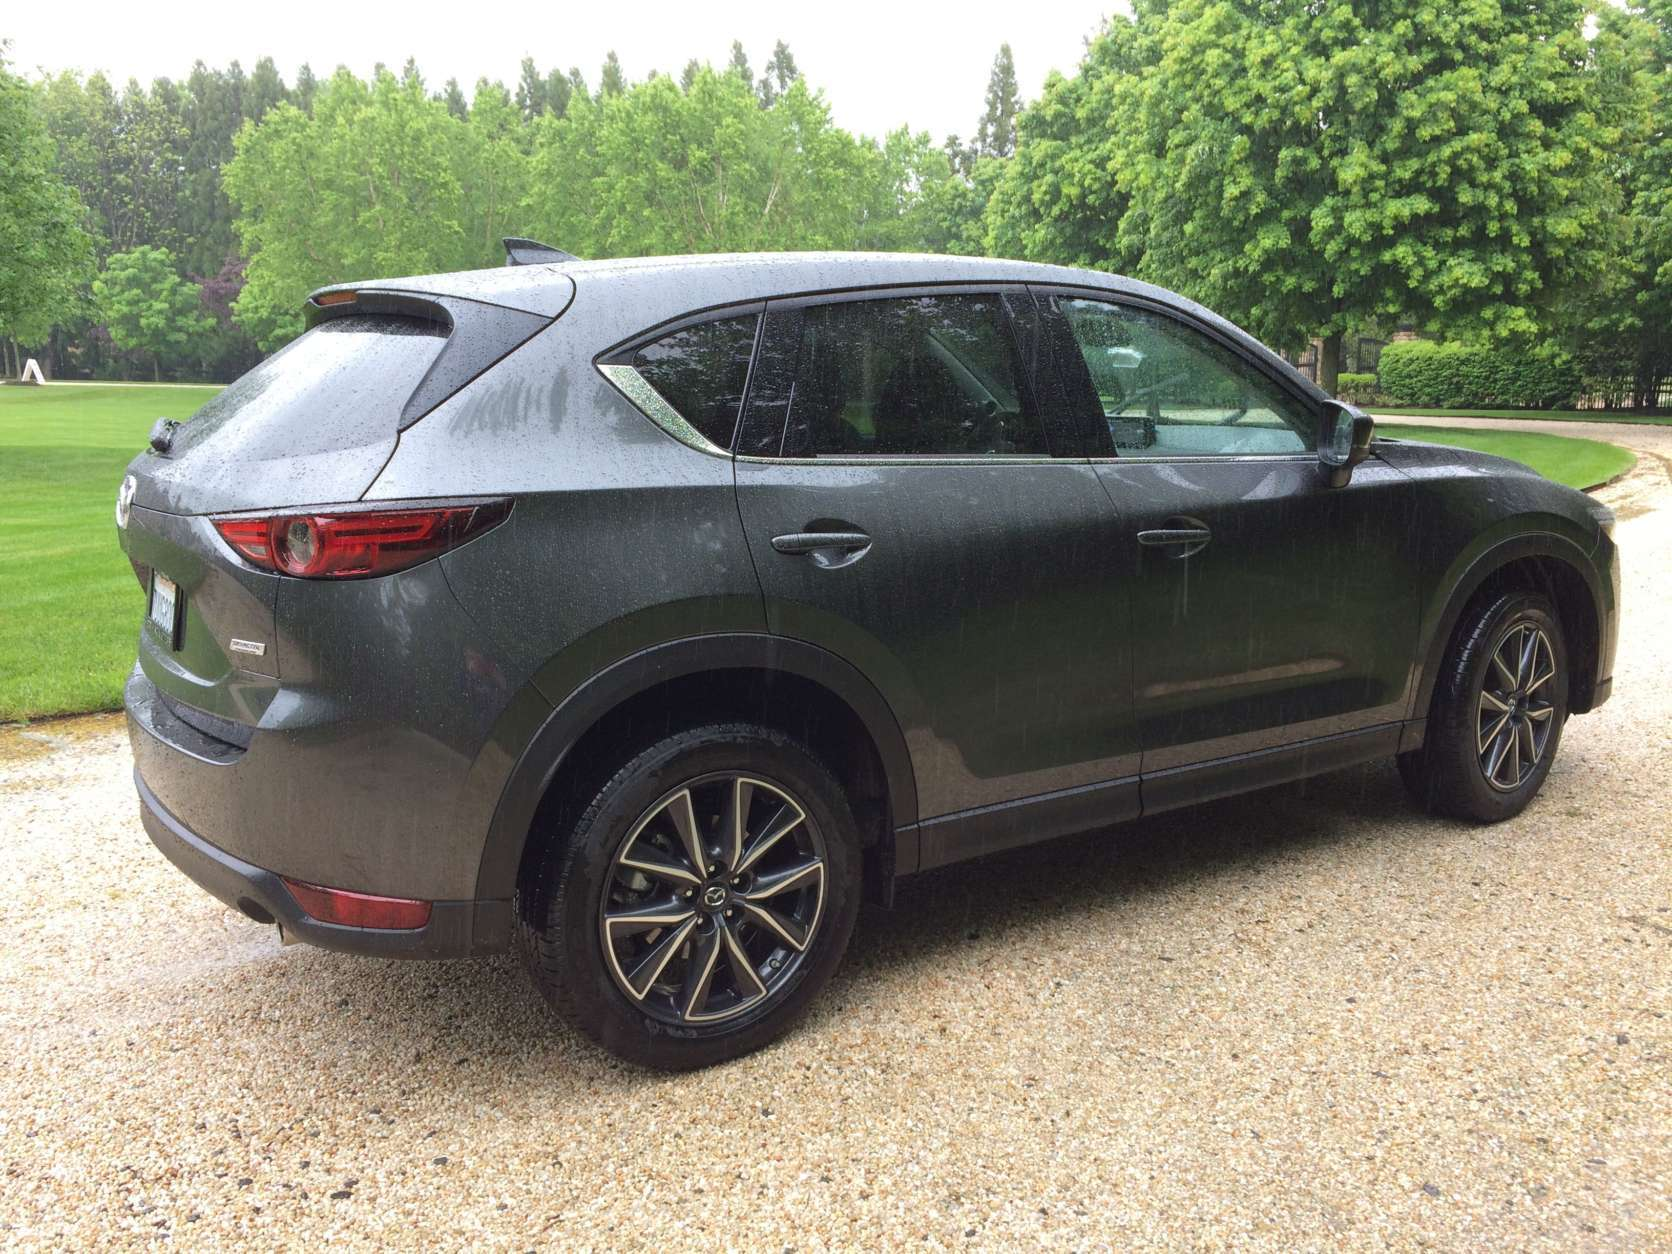 Rear styling seems to have adopted more of the new CX-9 look. Dual exhaust tips and smaller rear taillight assembly with some nice-flowing shapes offer a minimal yet stylish look for this segment. (WTOP/Mike Parris)